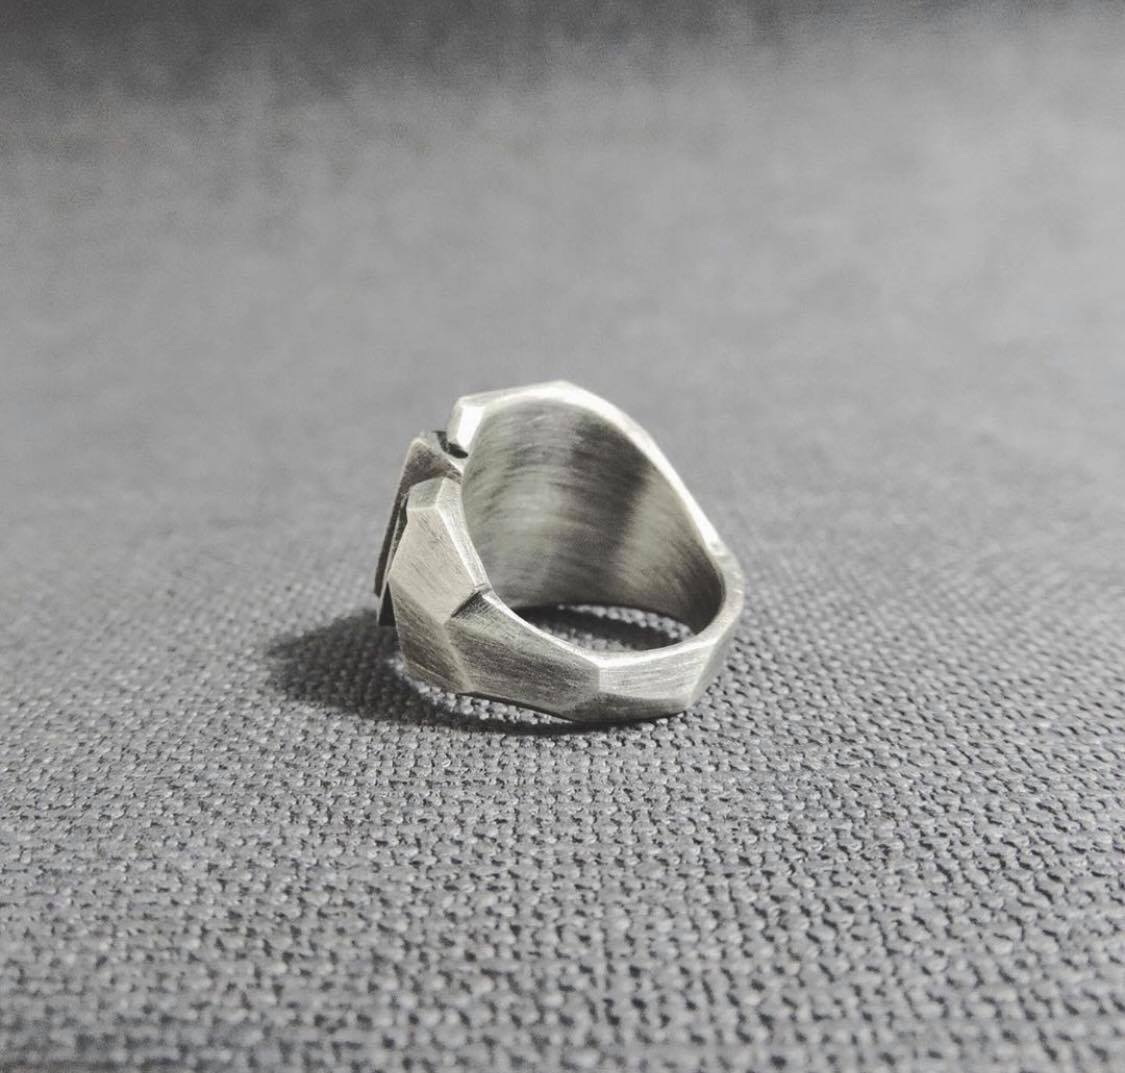 Magnetic Rose thewbros geometric collection 925 sterling silver A Grade Silver jewelry geometric rings geometric pinky rings silver rings high end fashion famous brandMetallic Rose Ring - The W Brothers